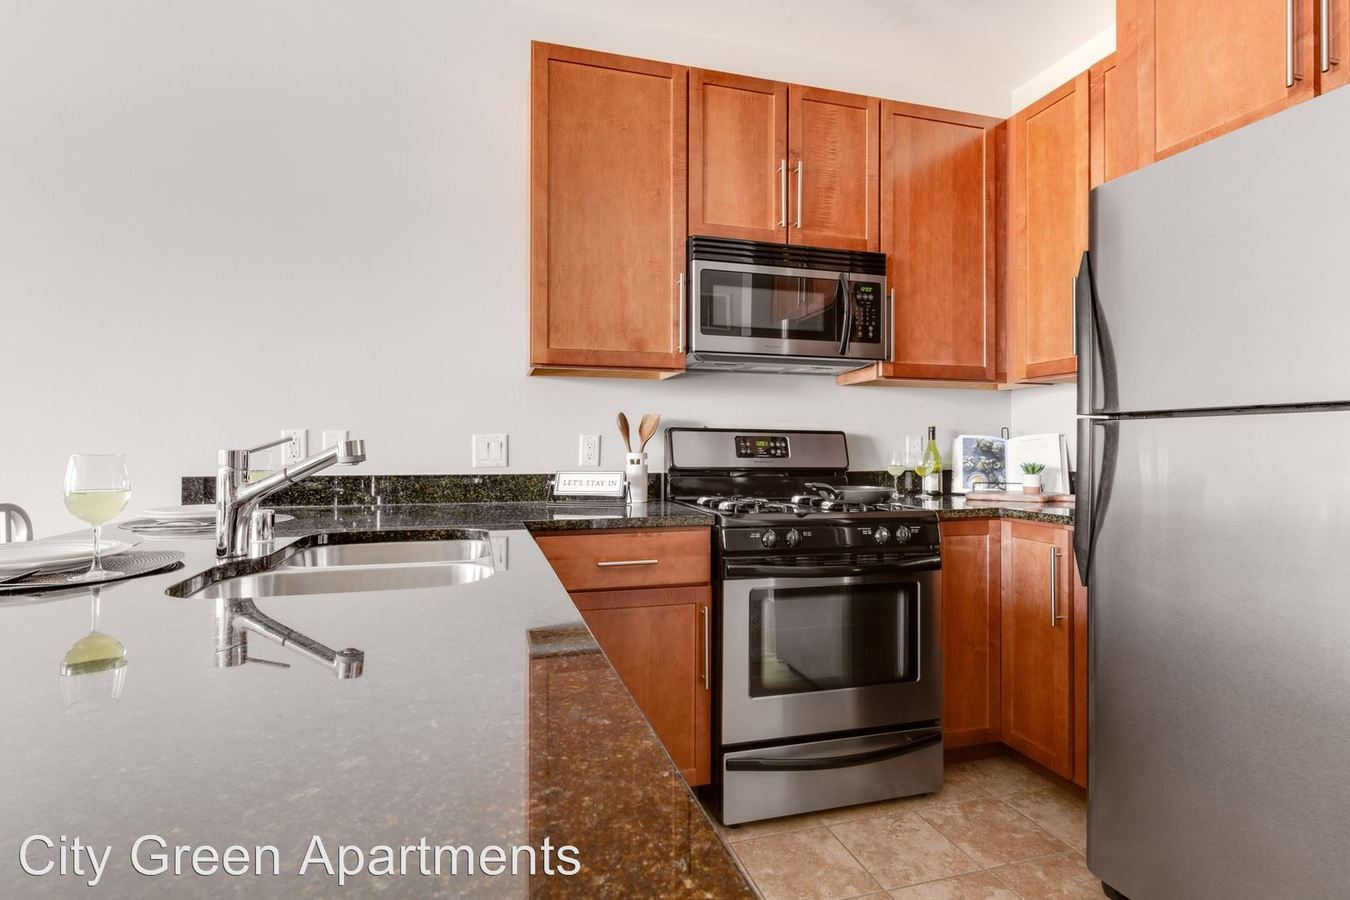 2 Bedrooms 2 Bathrooms Apartment for rent at City Green Apartments in Milwaukee, WI